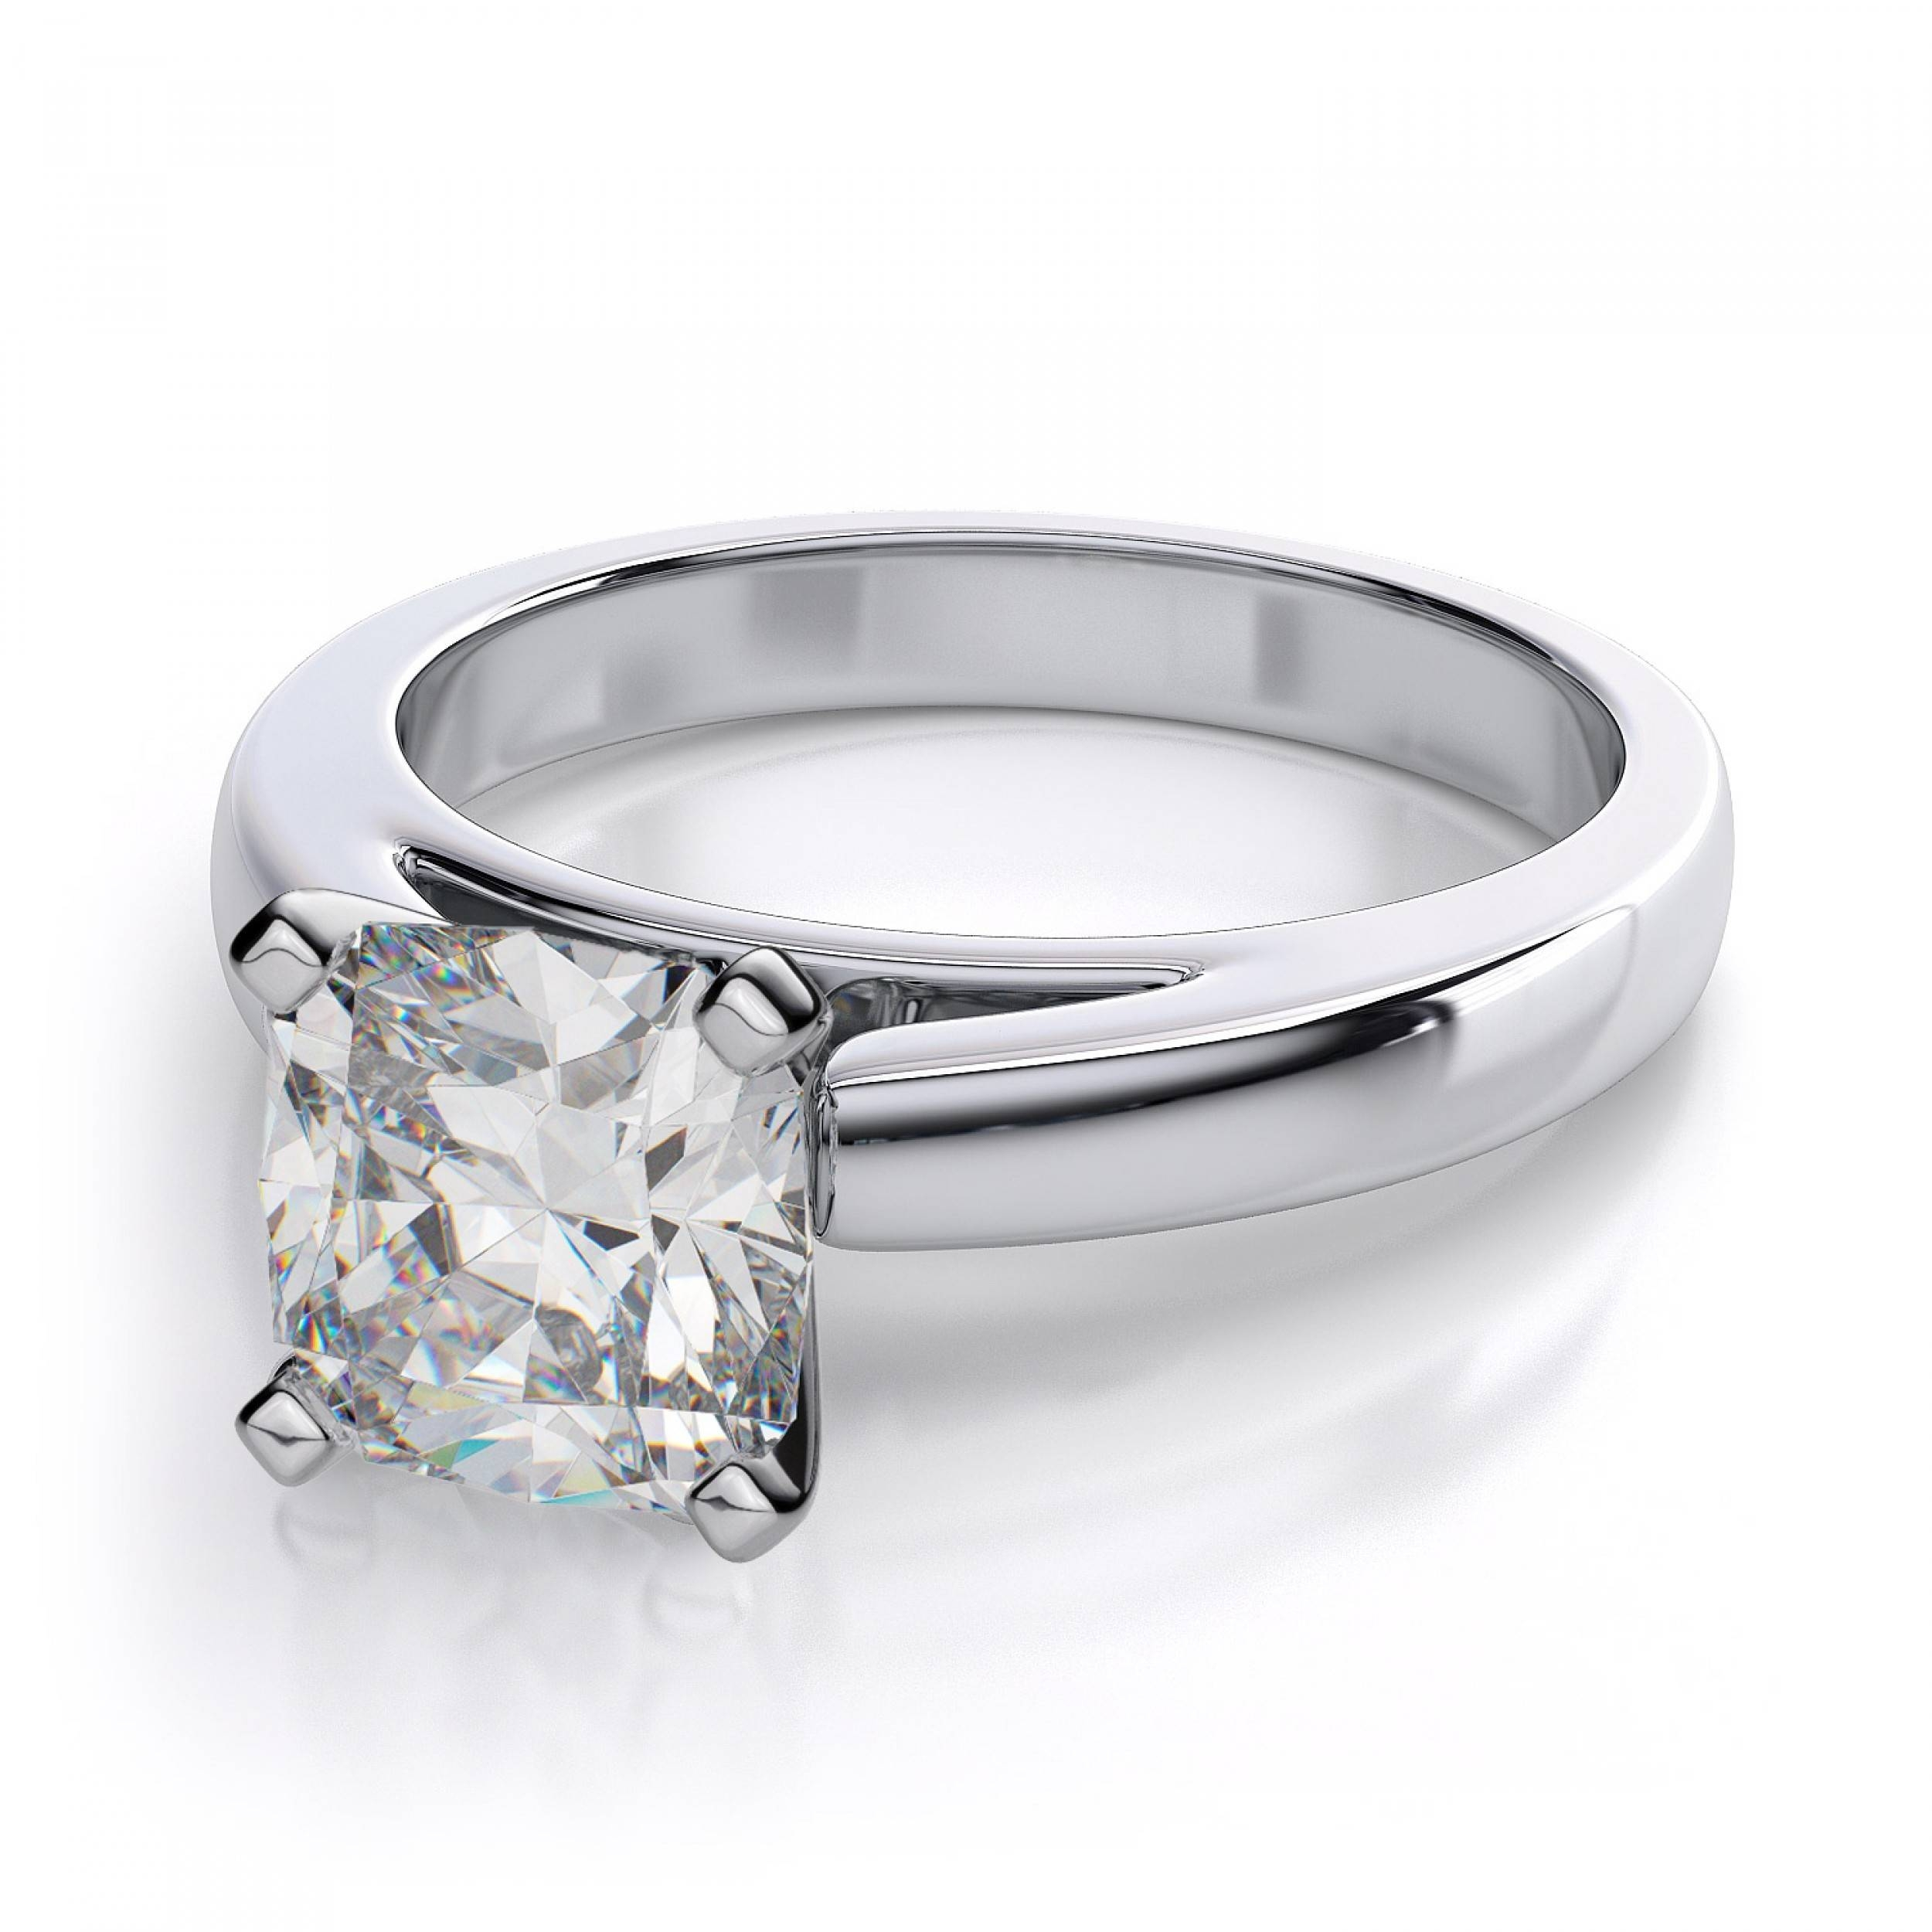 Cushion Cut Diamond Engagement Ring – Platinum Regarding Diamond Wedding Rings Settings (View 6 of 15)